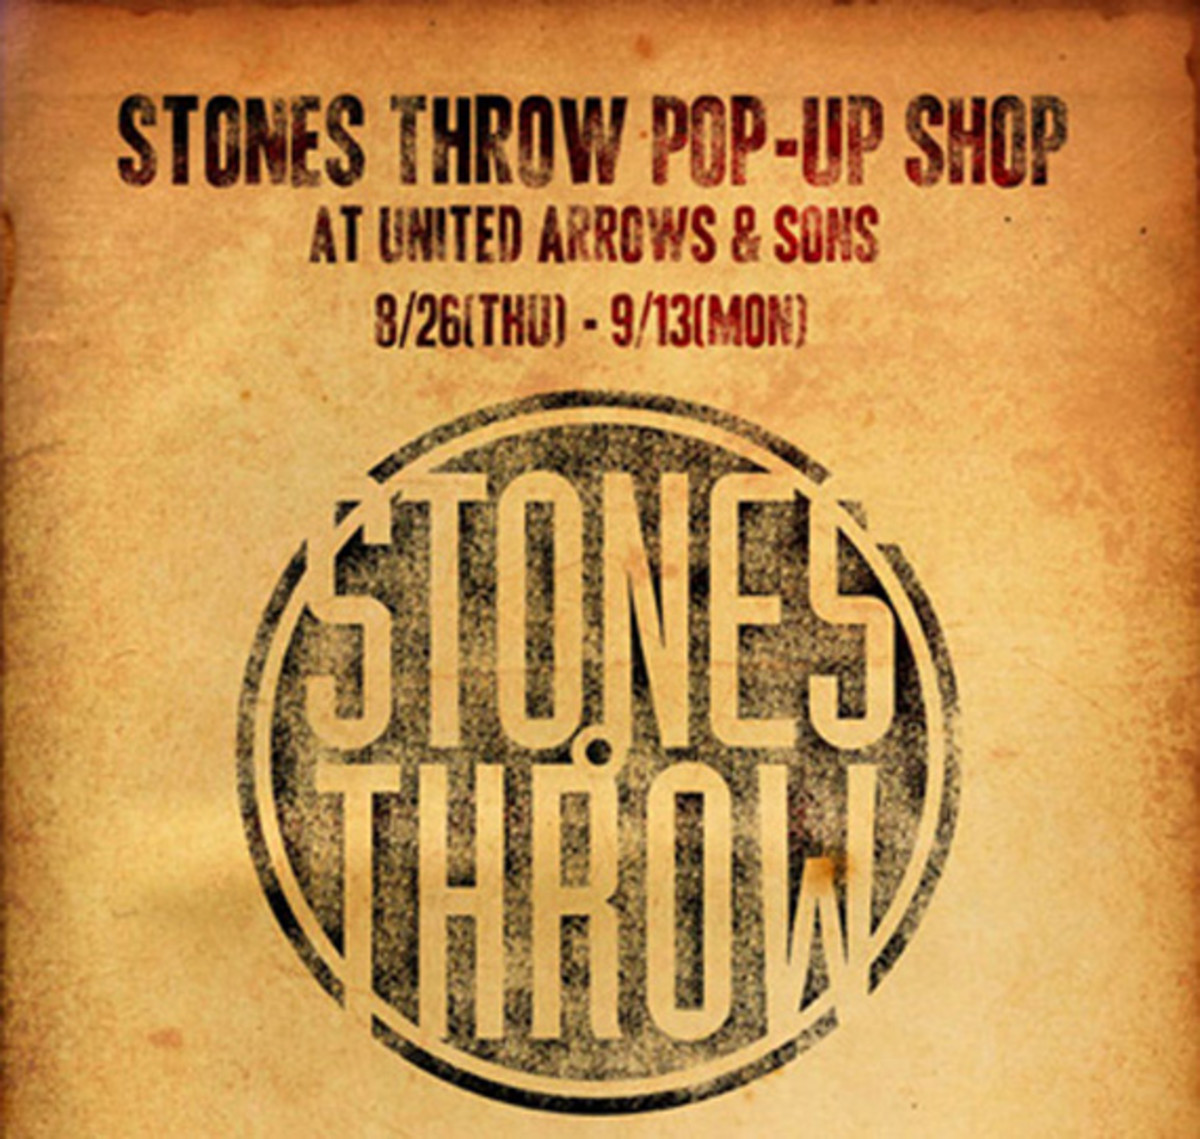 Stones Throw Pop Up Shop 1